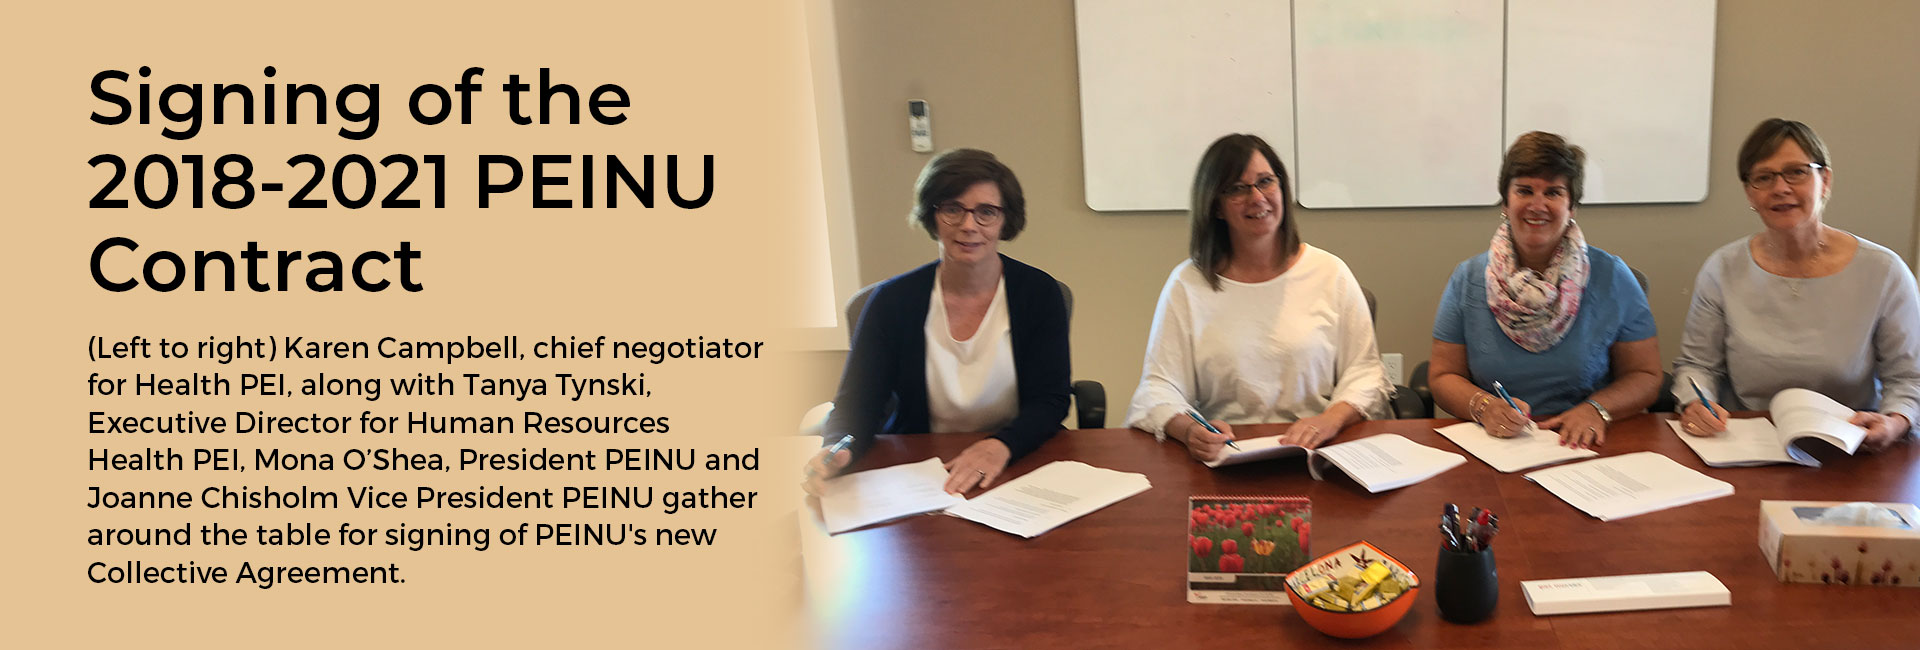 PEINU Contract Signing